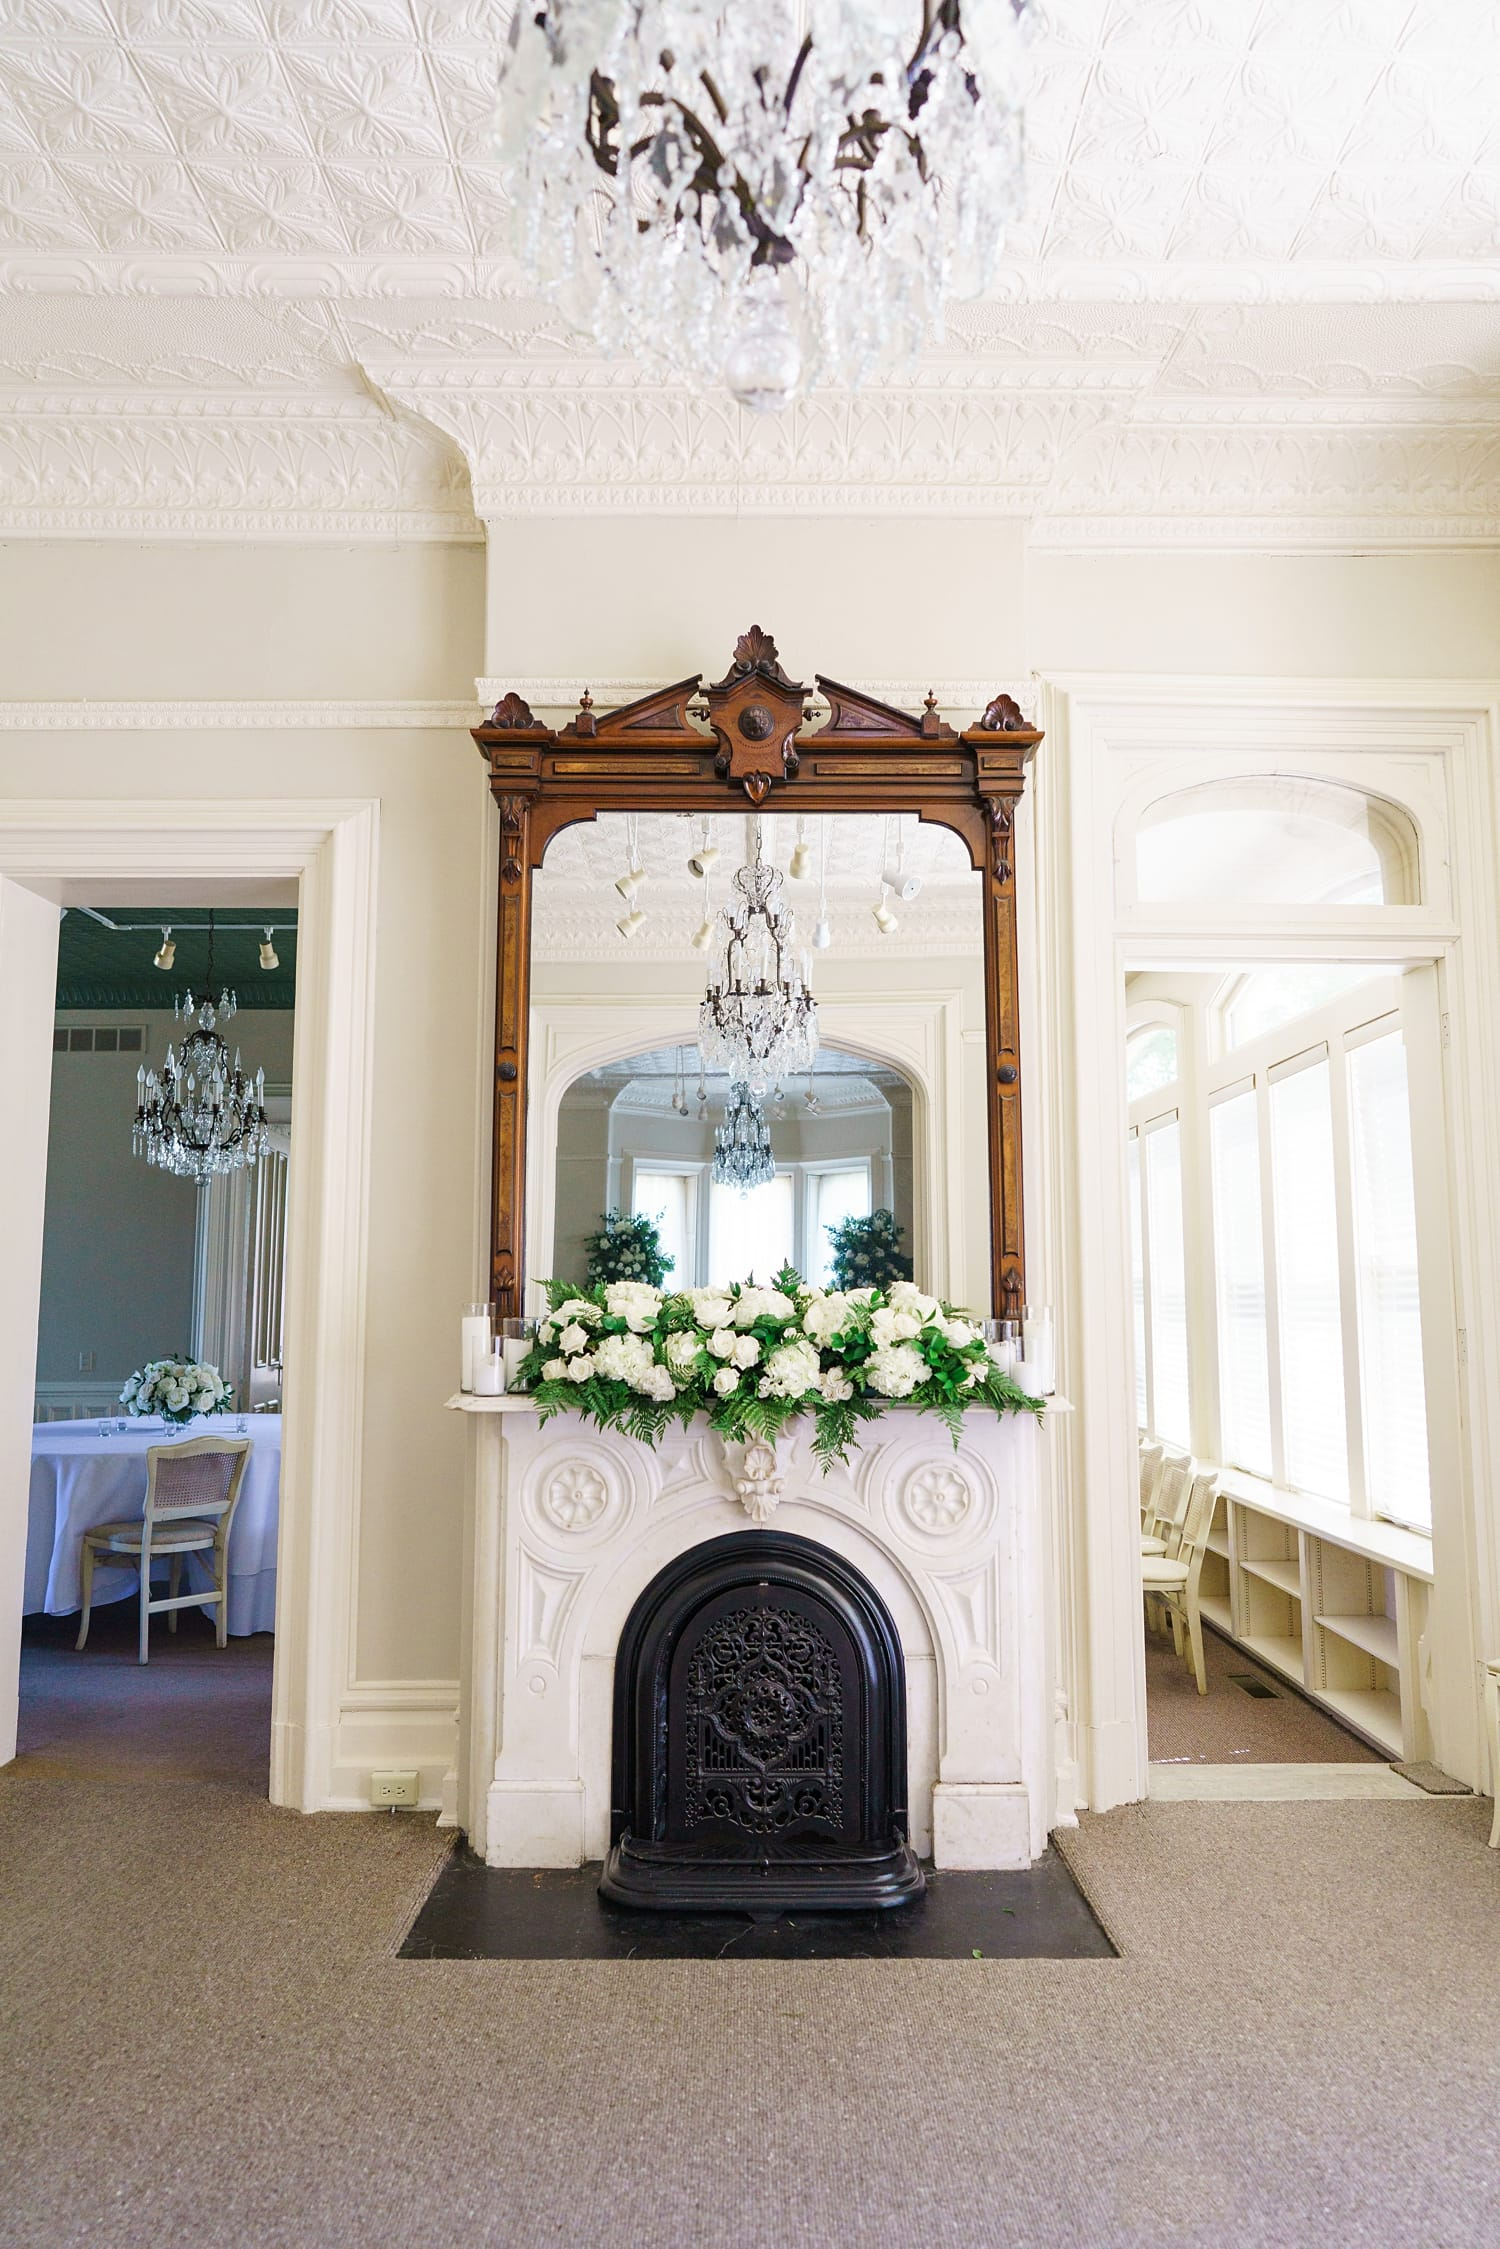 floral mantel installation by hydrangea bloom